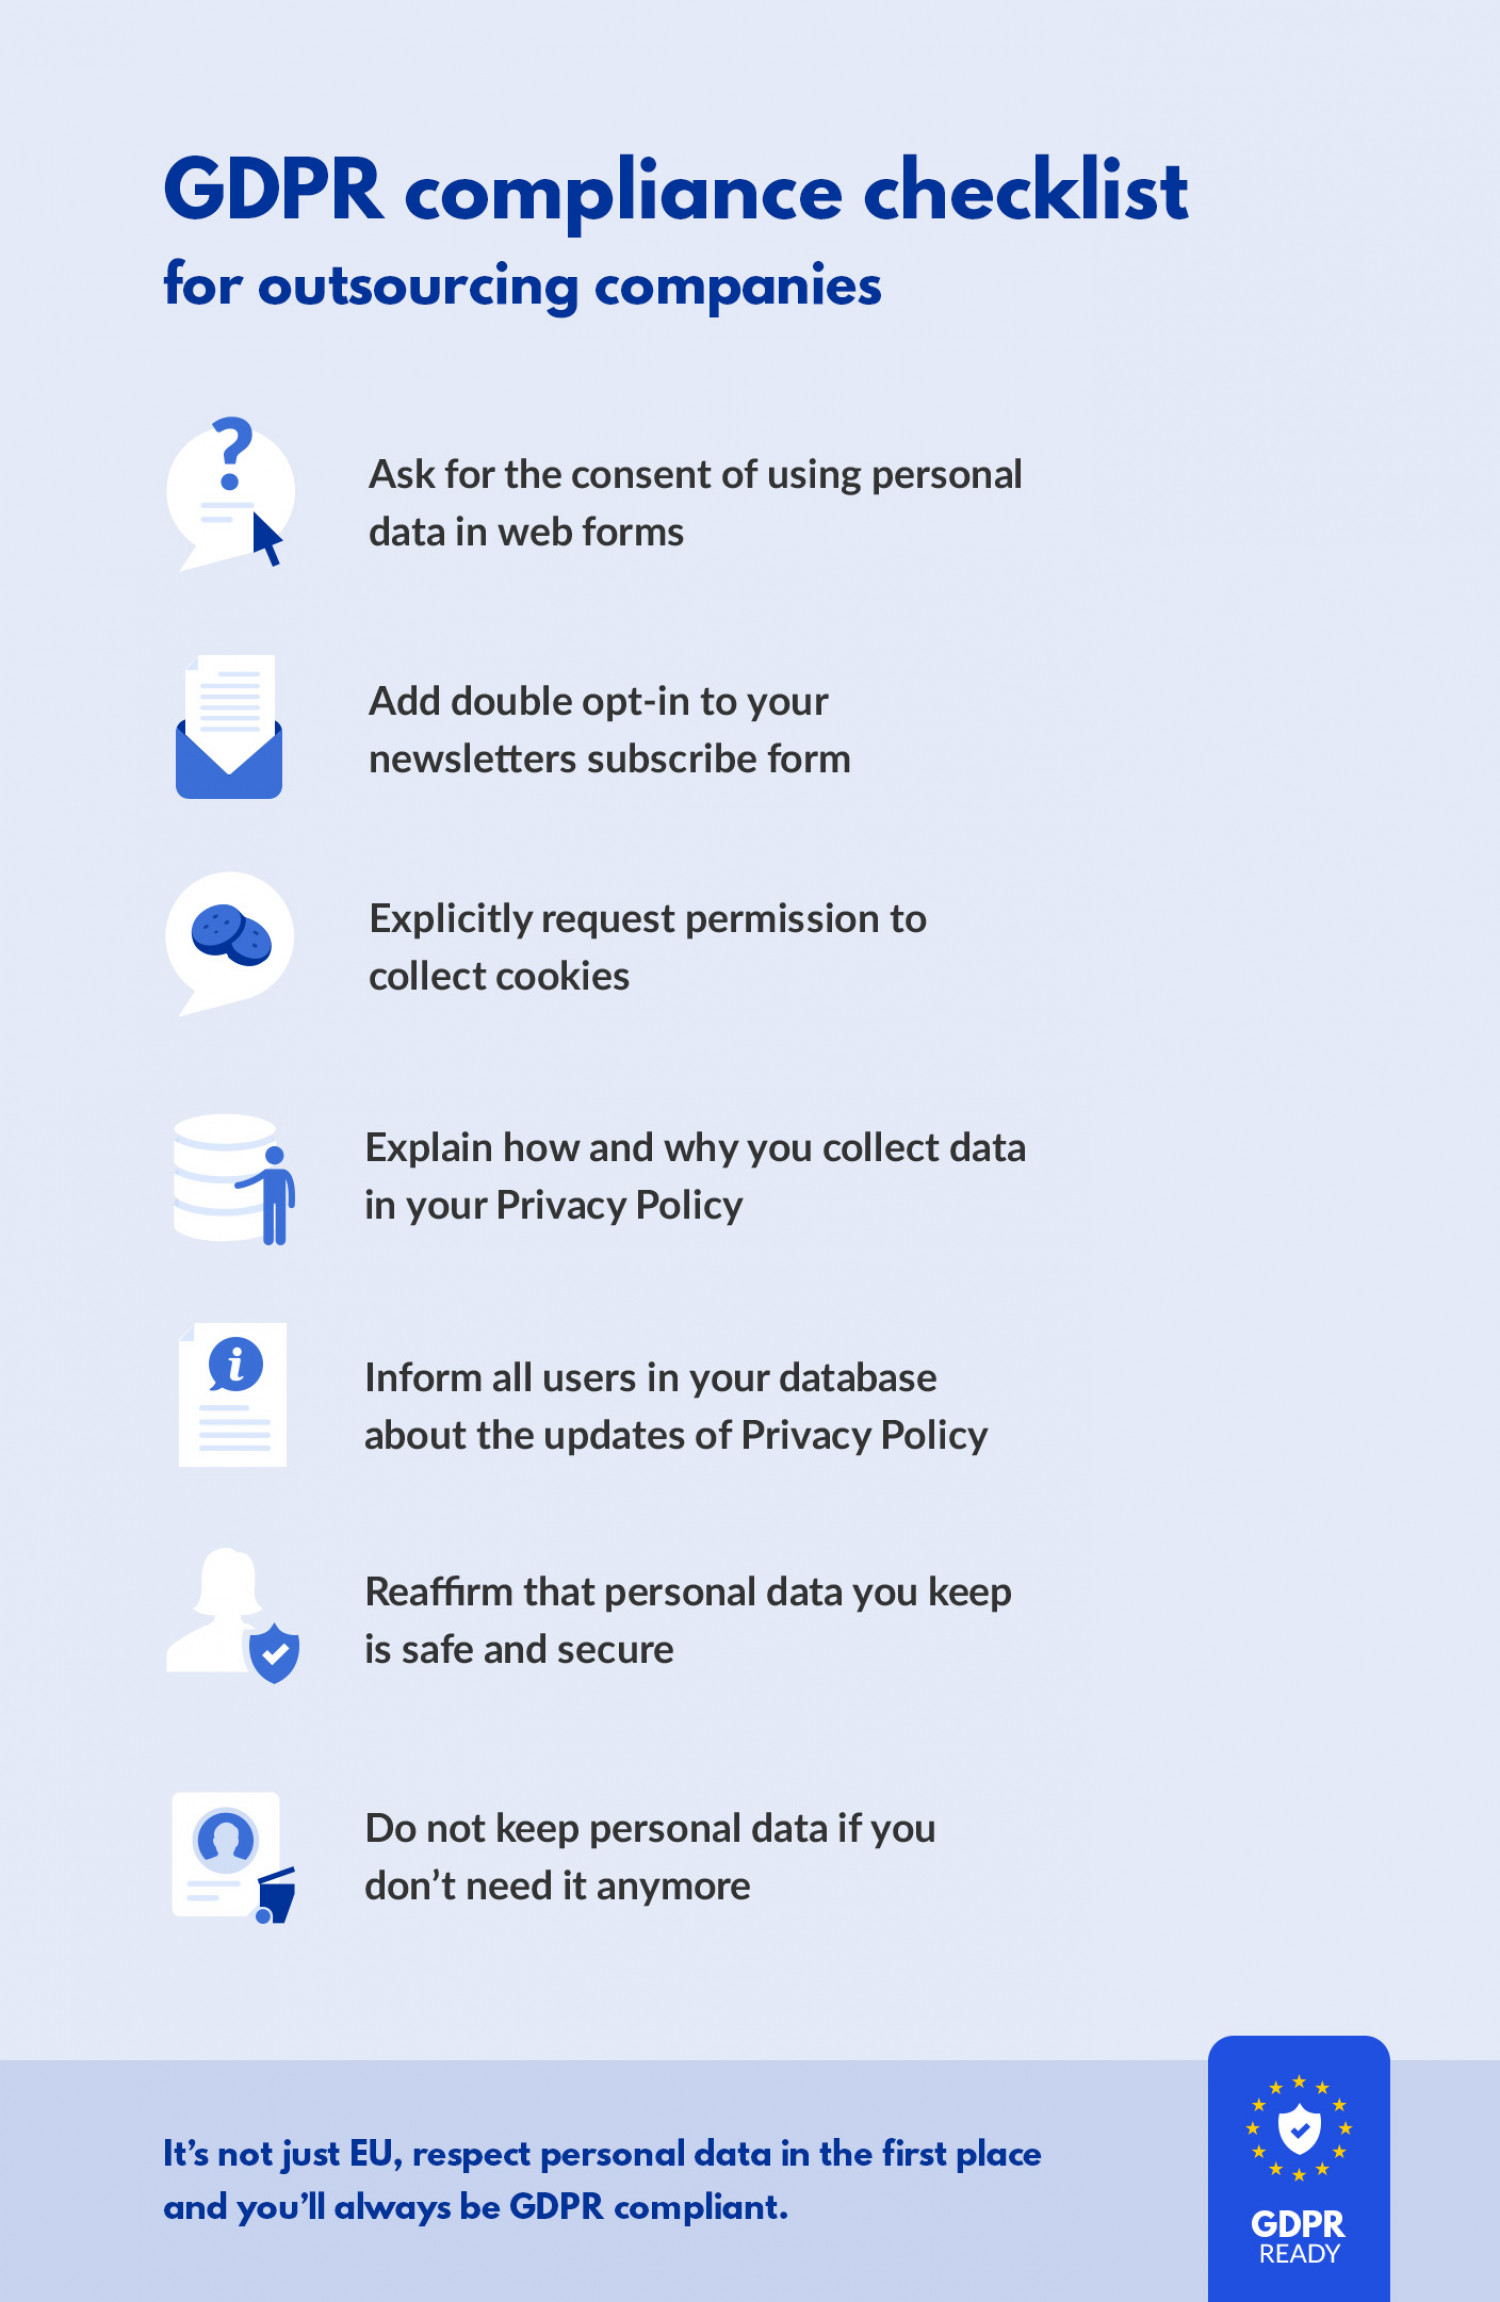 GDPR compliance checklist for outsourcing companies Infographic